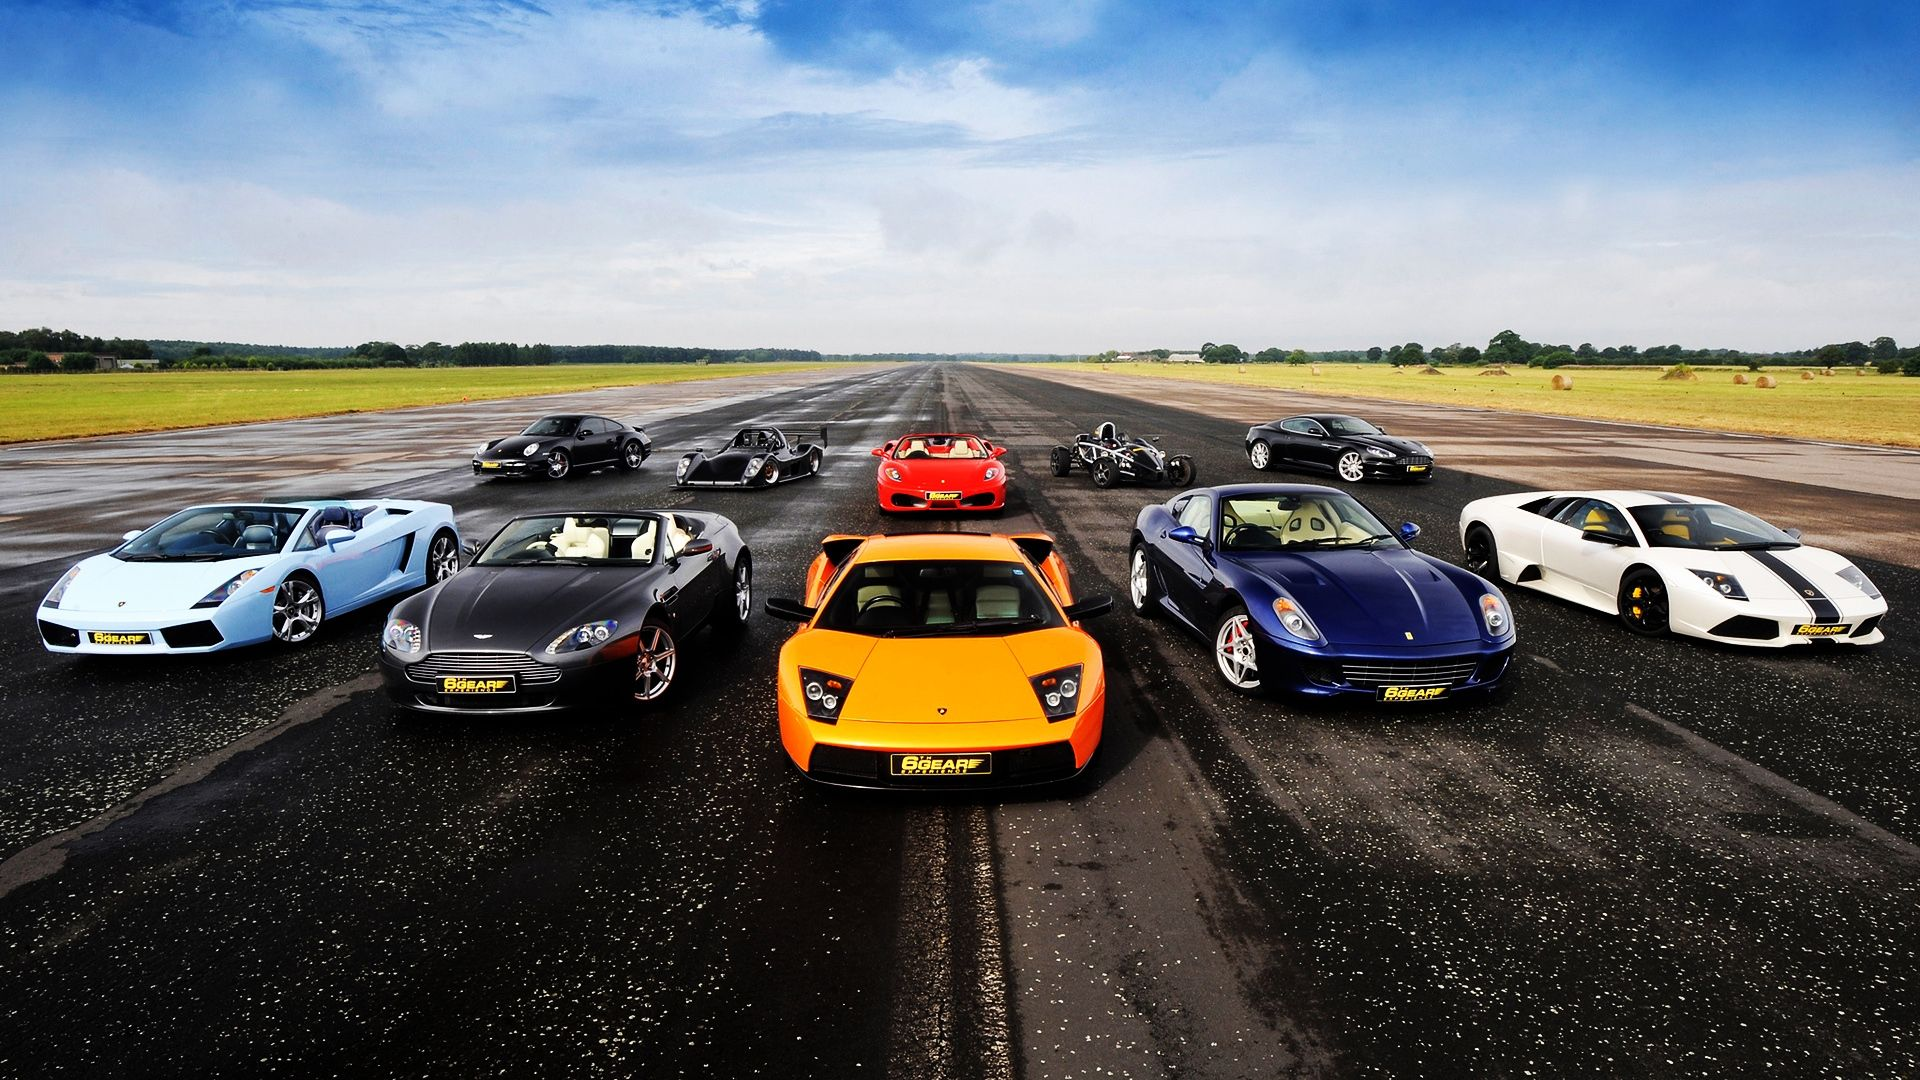 Showing Veyron 2013 Sports Cars HD - Showing Veyron 2013 Sports Cars HD